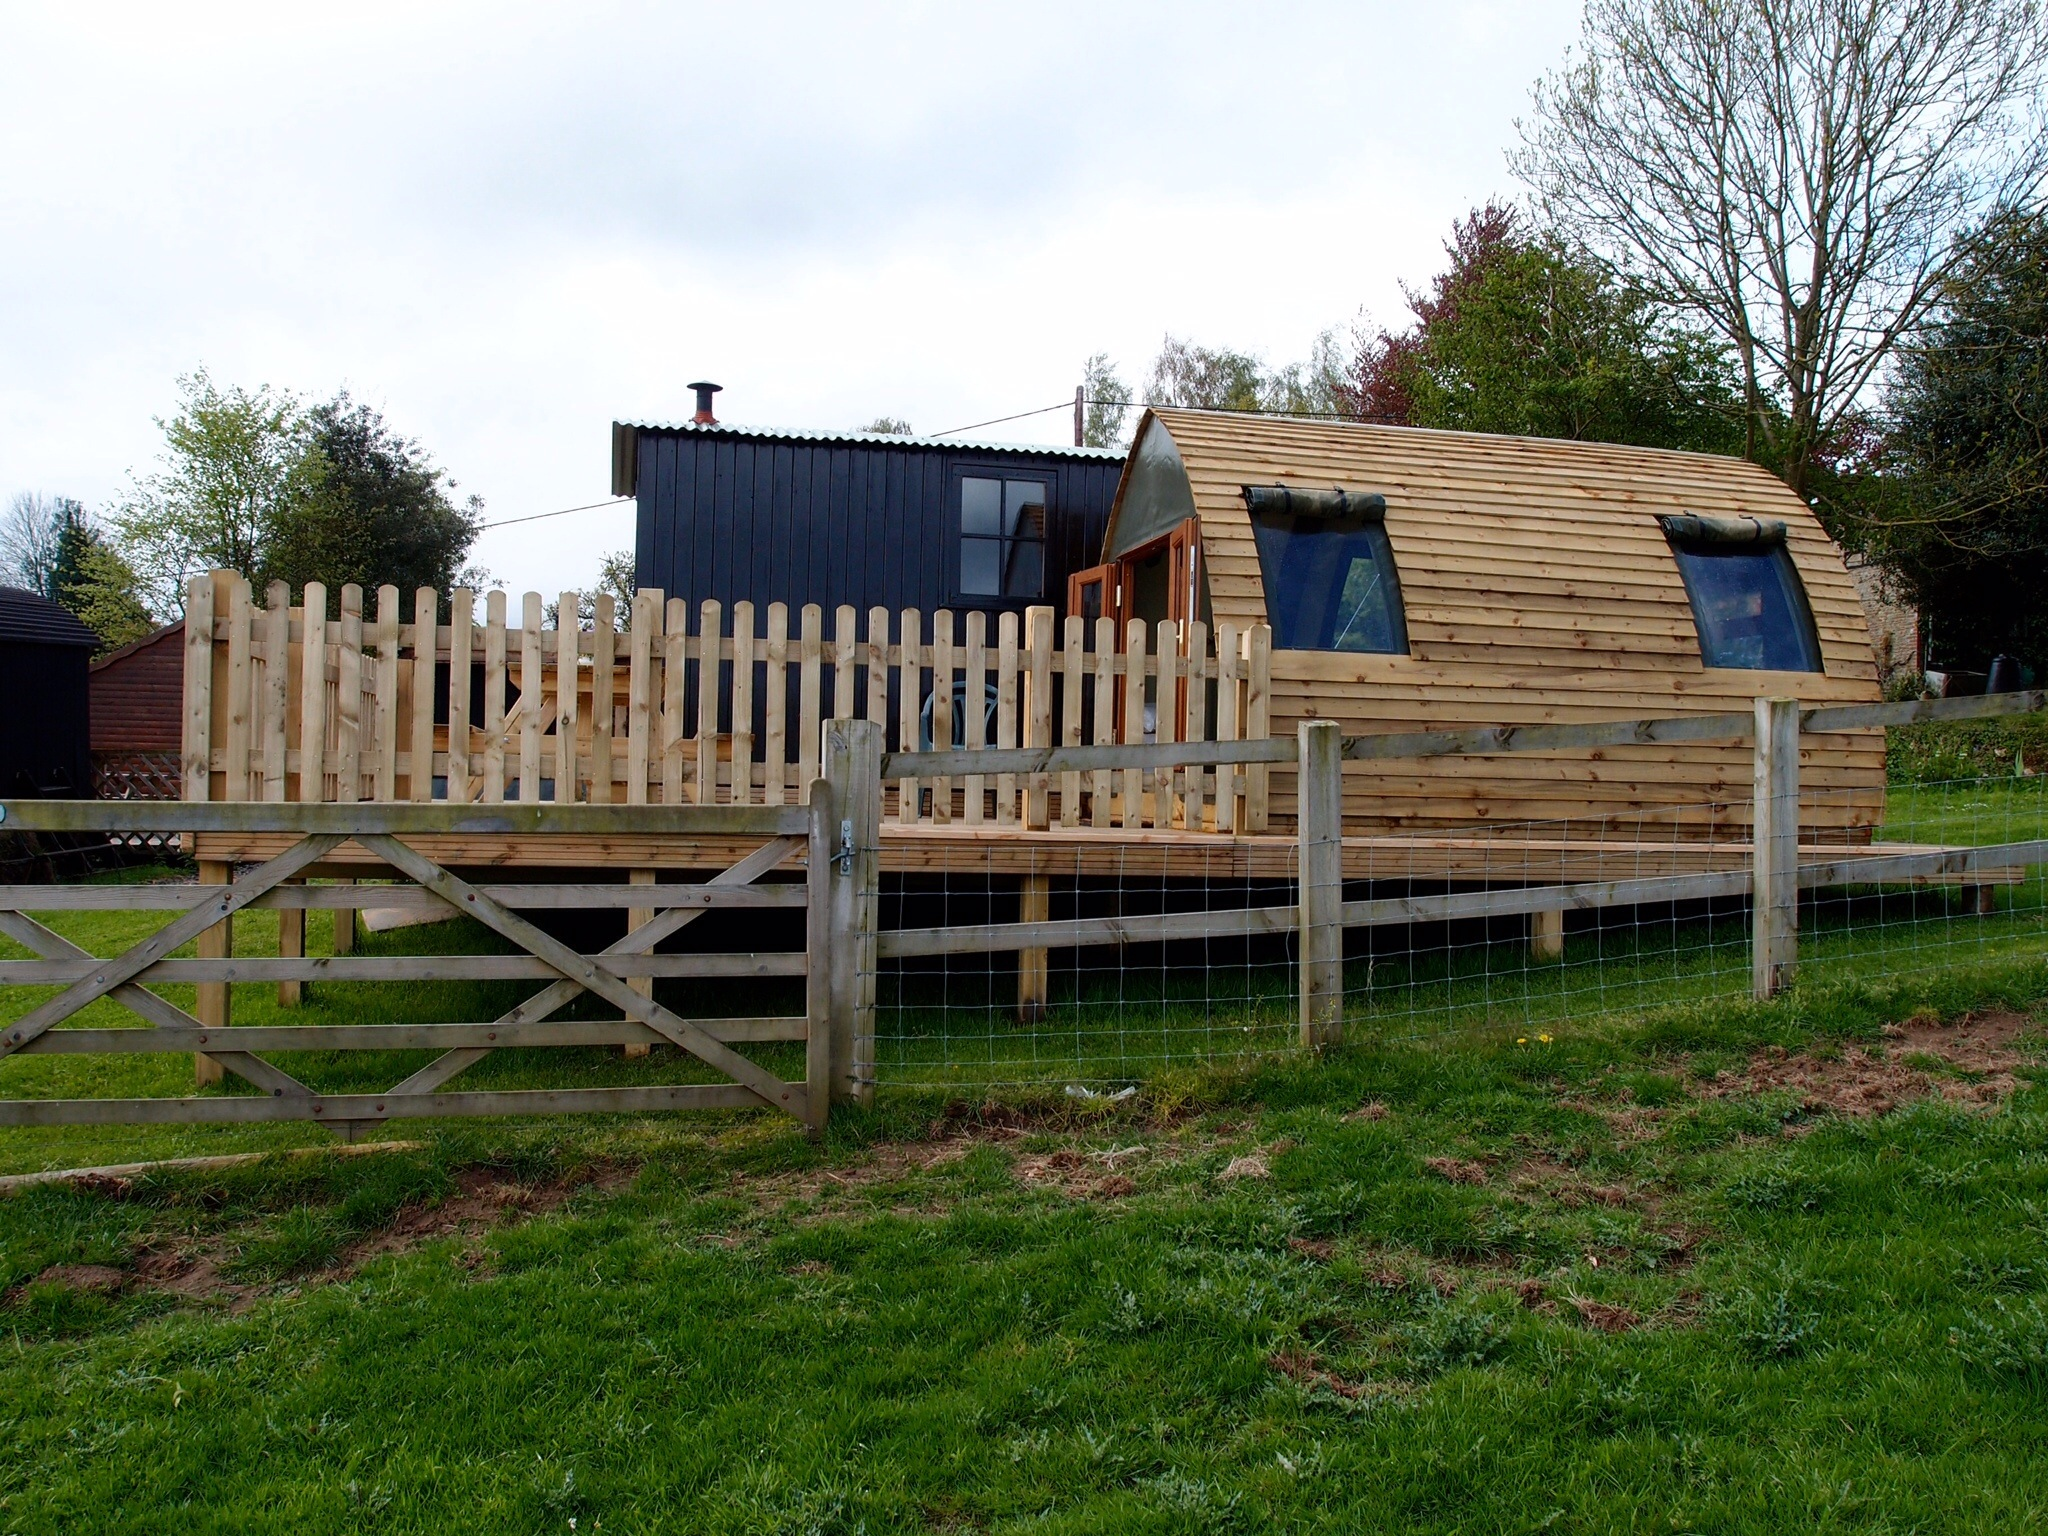 The Arc, decking and the Hut behind